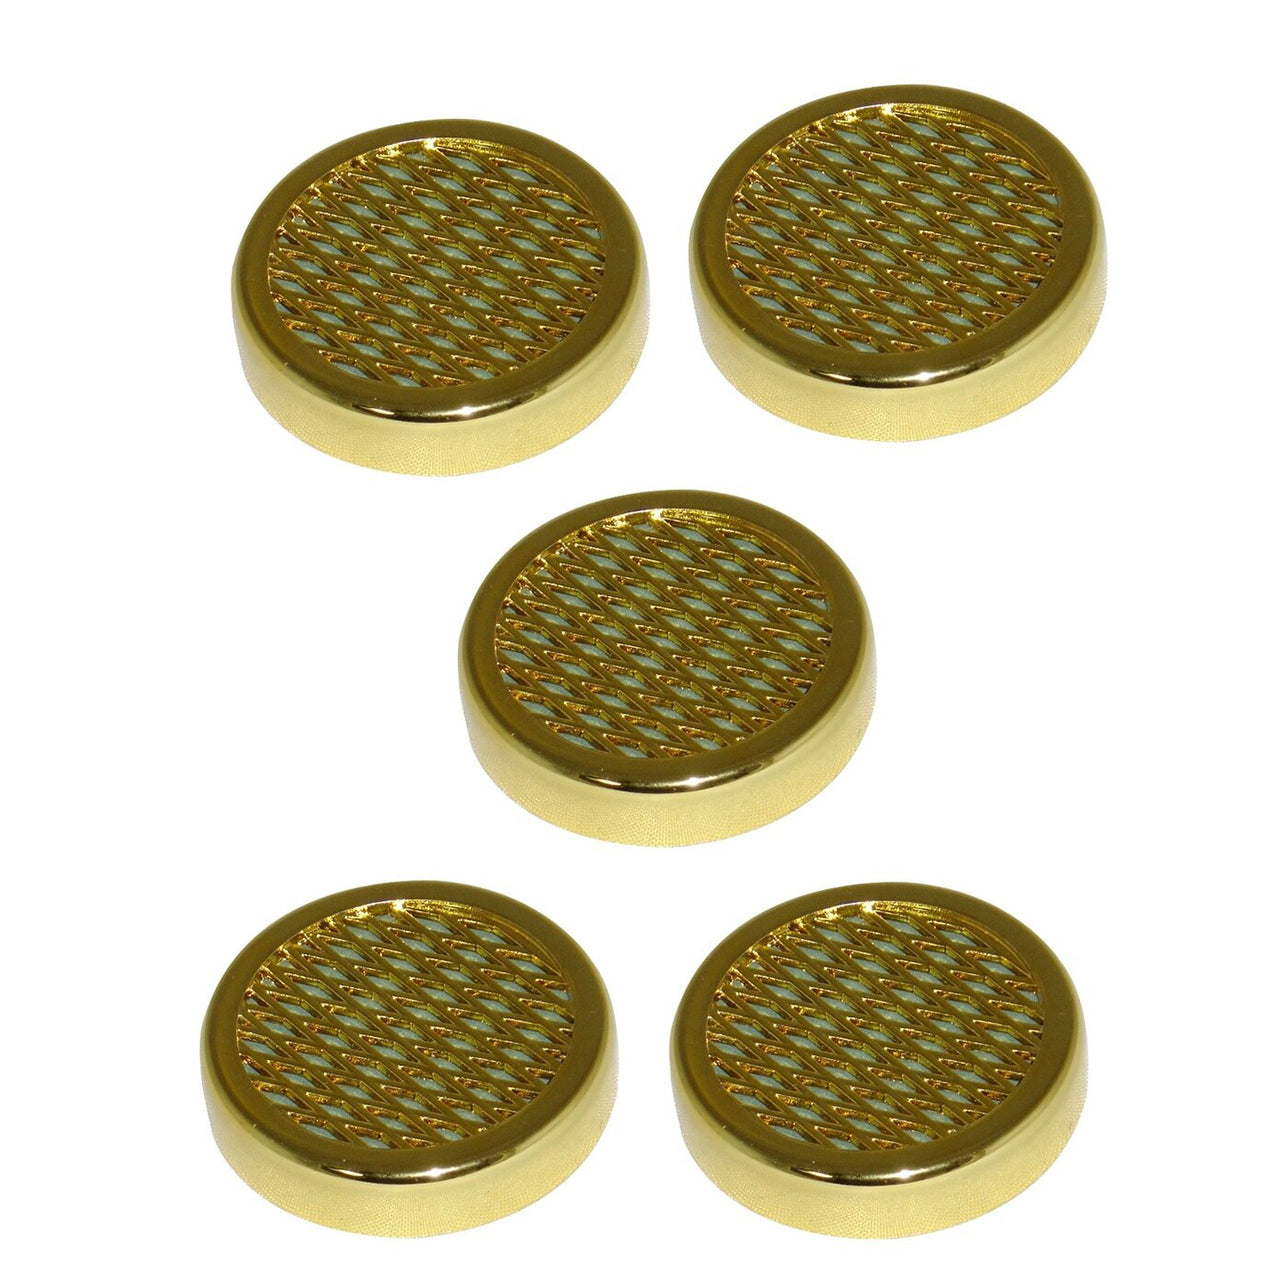 Cigar Humidifier for Humidors Small Round Gold Pack of 5